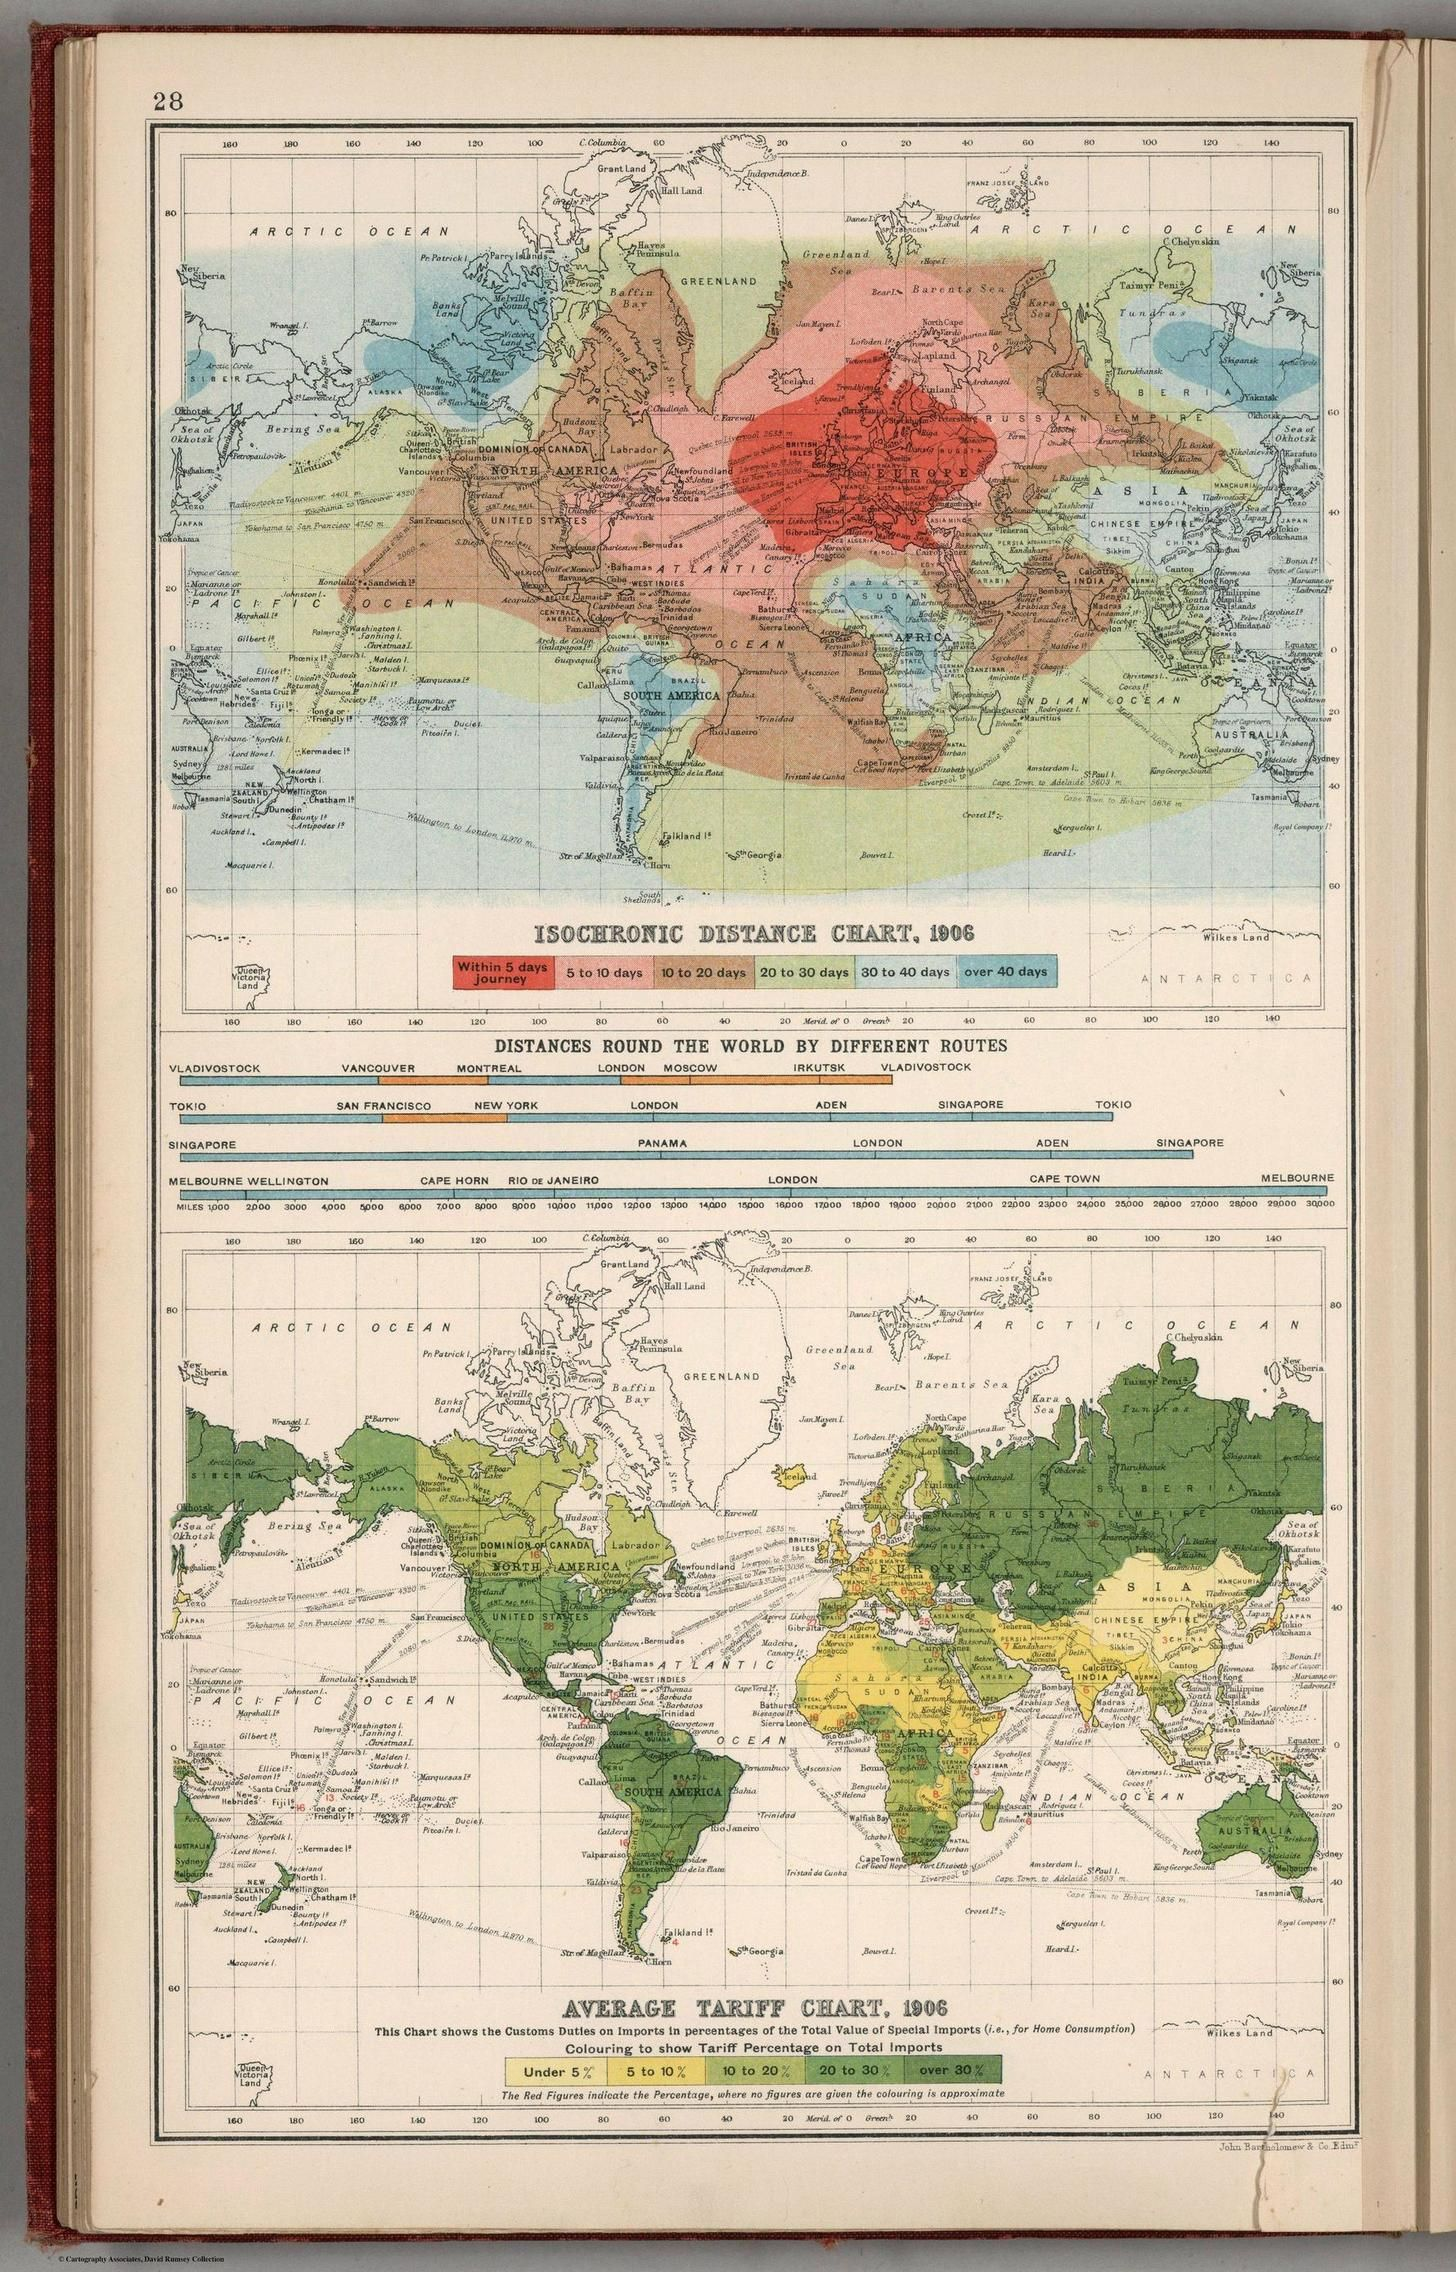 Travel times isochronic distances from london 1906 world maps isochronic distance chart average tariff chart bartholomew j gumiabroncs Choice Image